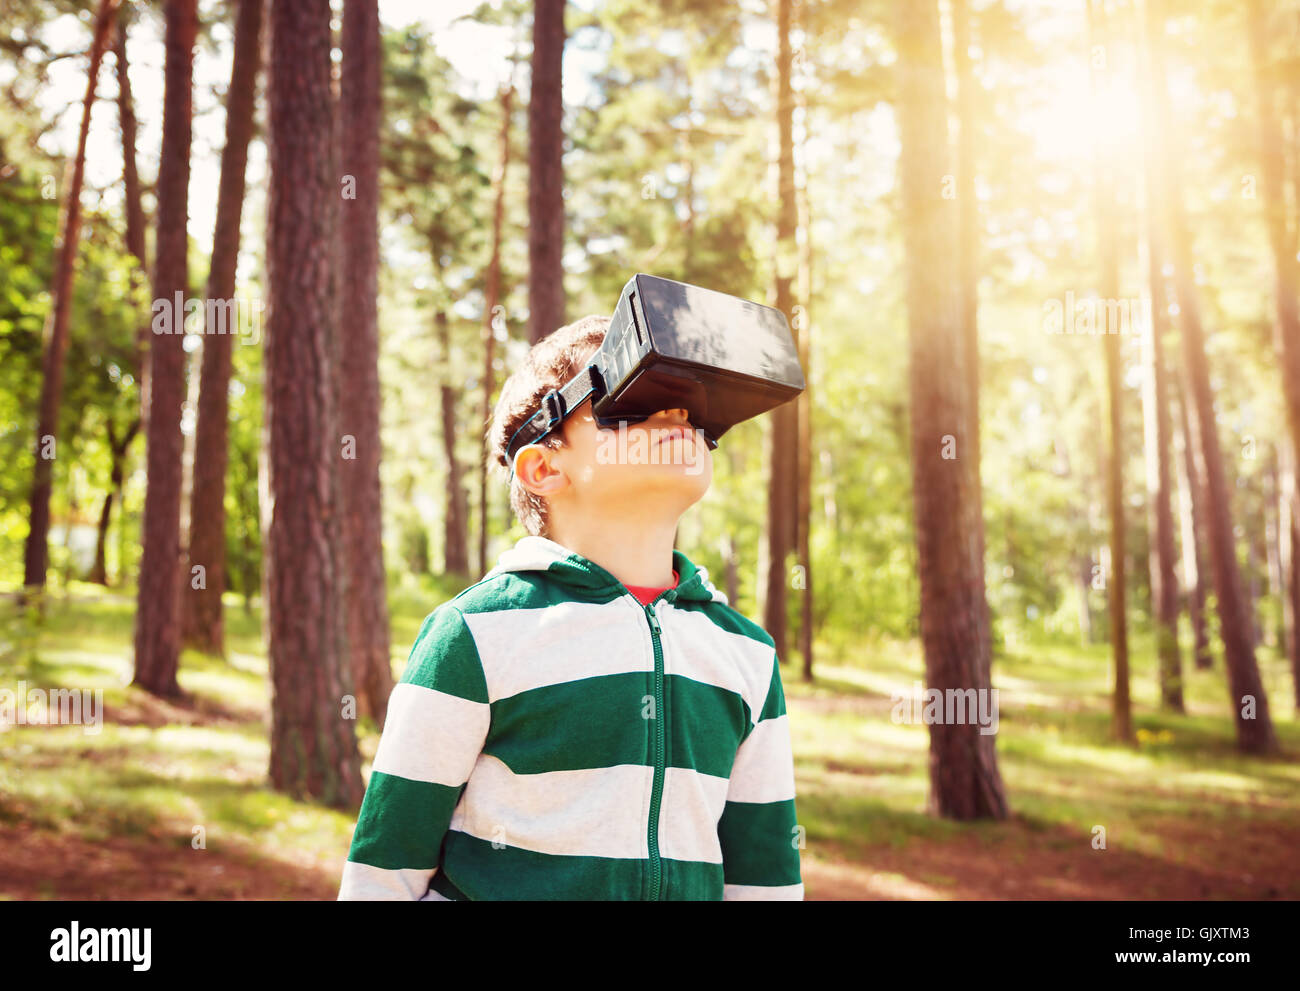 Child standing in the forest in virtual reality glasses - Stock Image